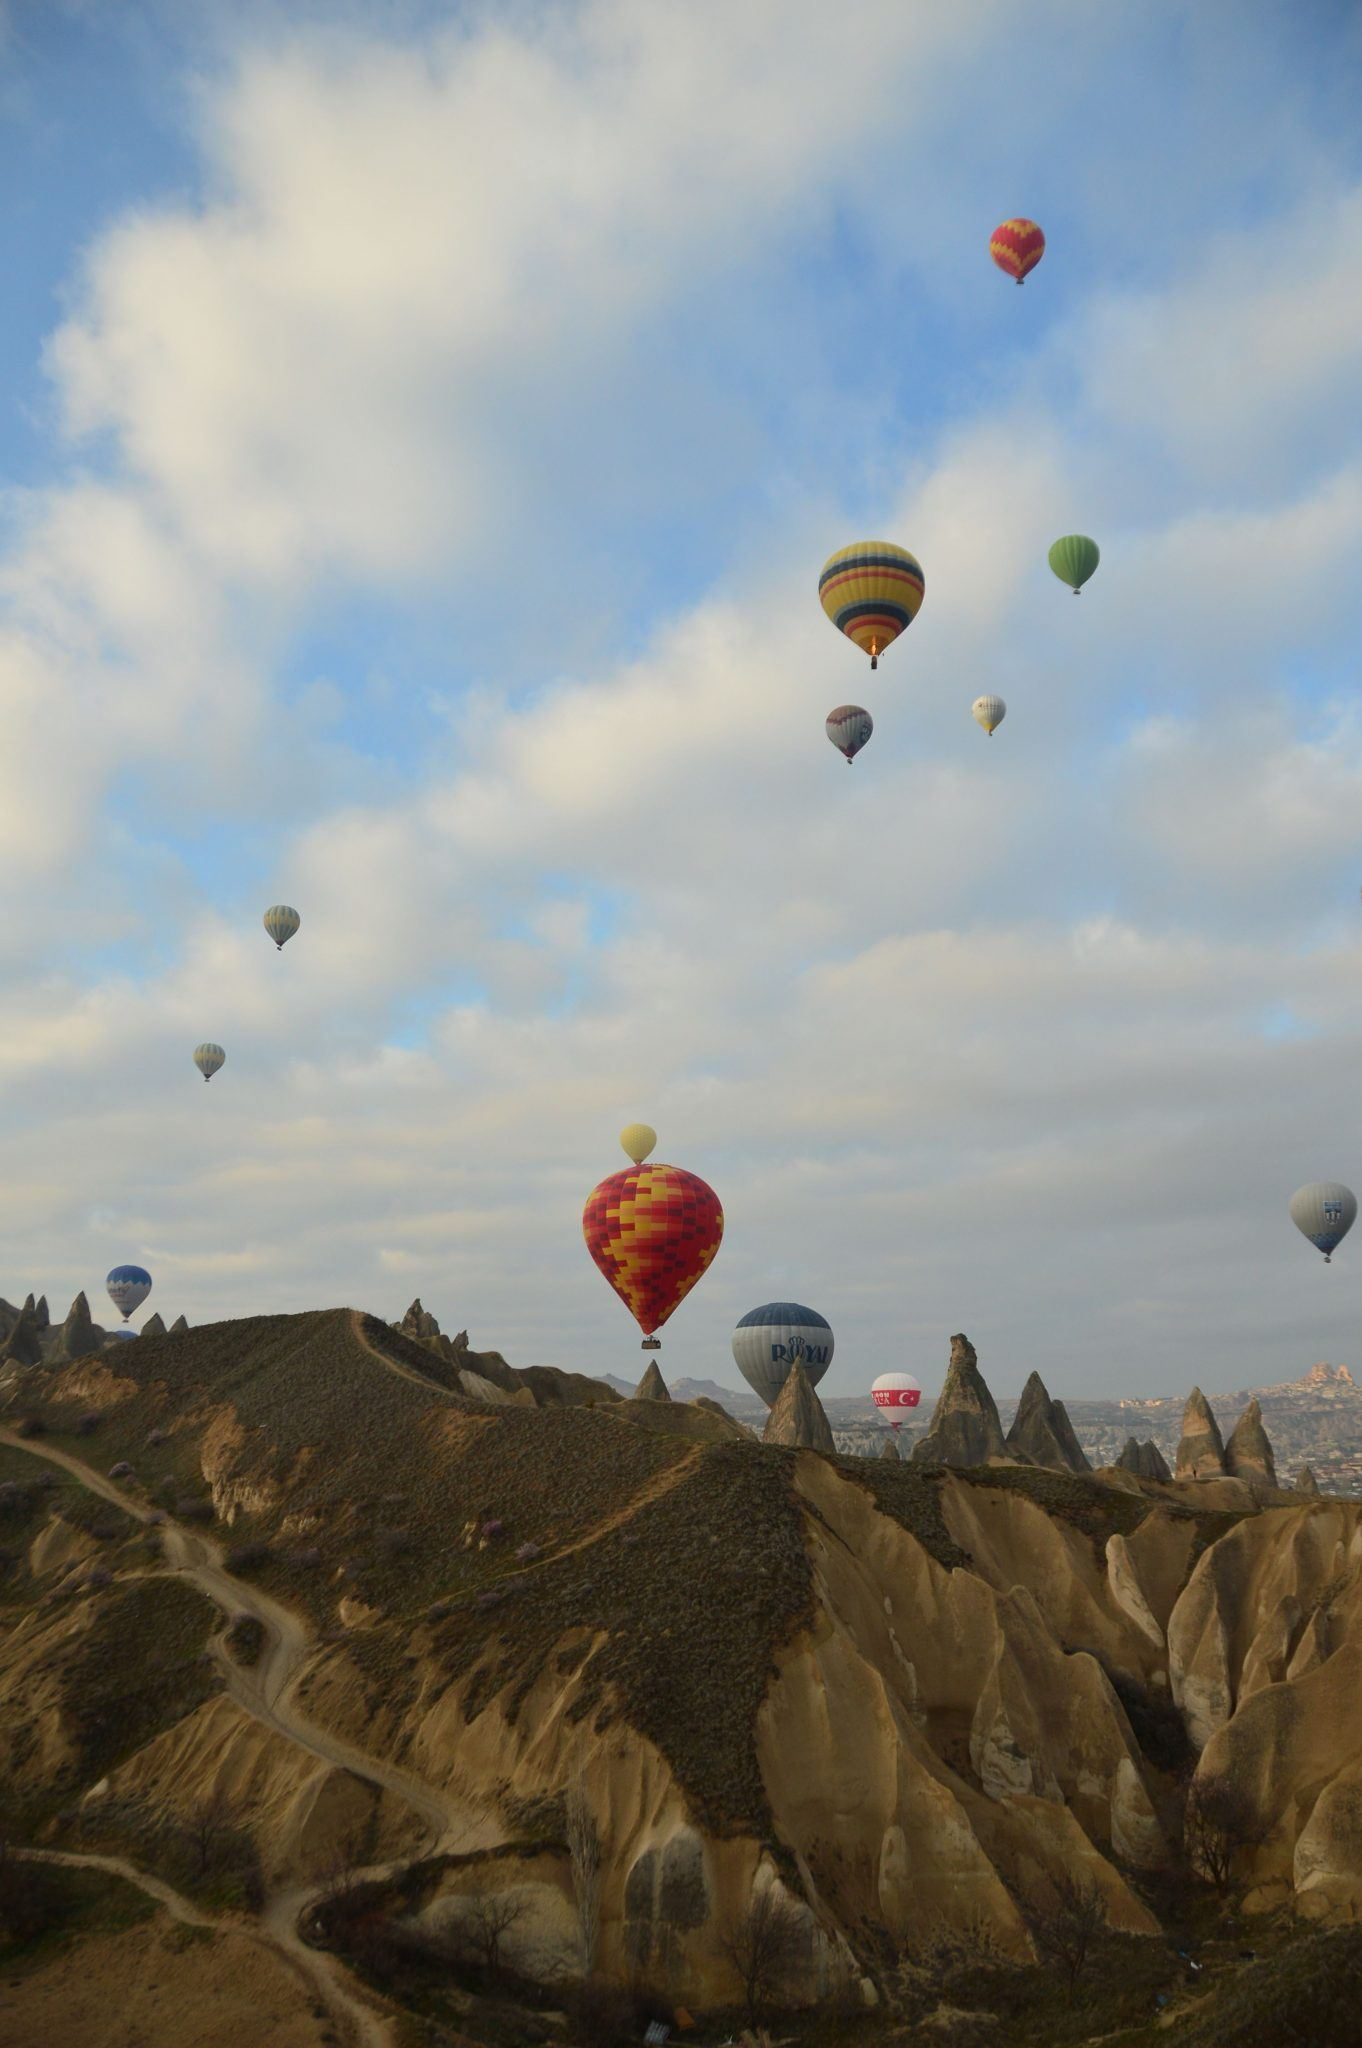 cappadocia hot air balloons against the sky